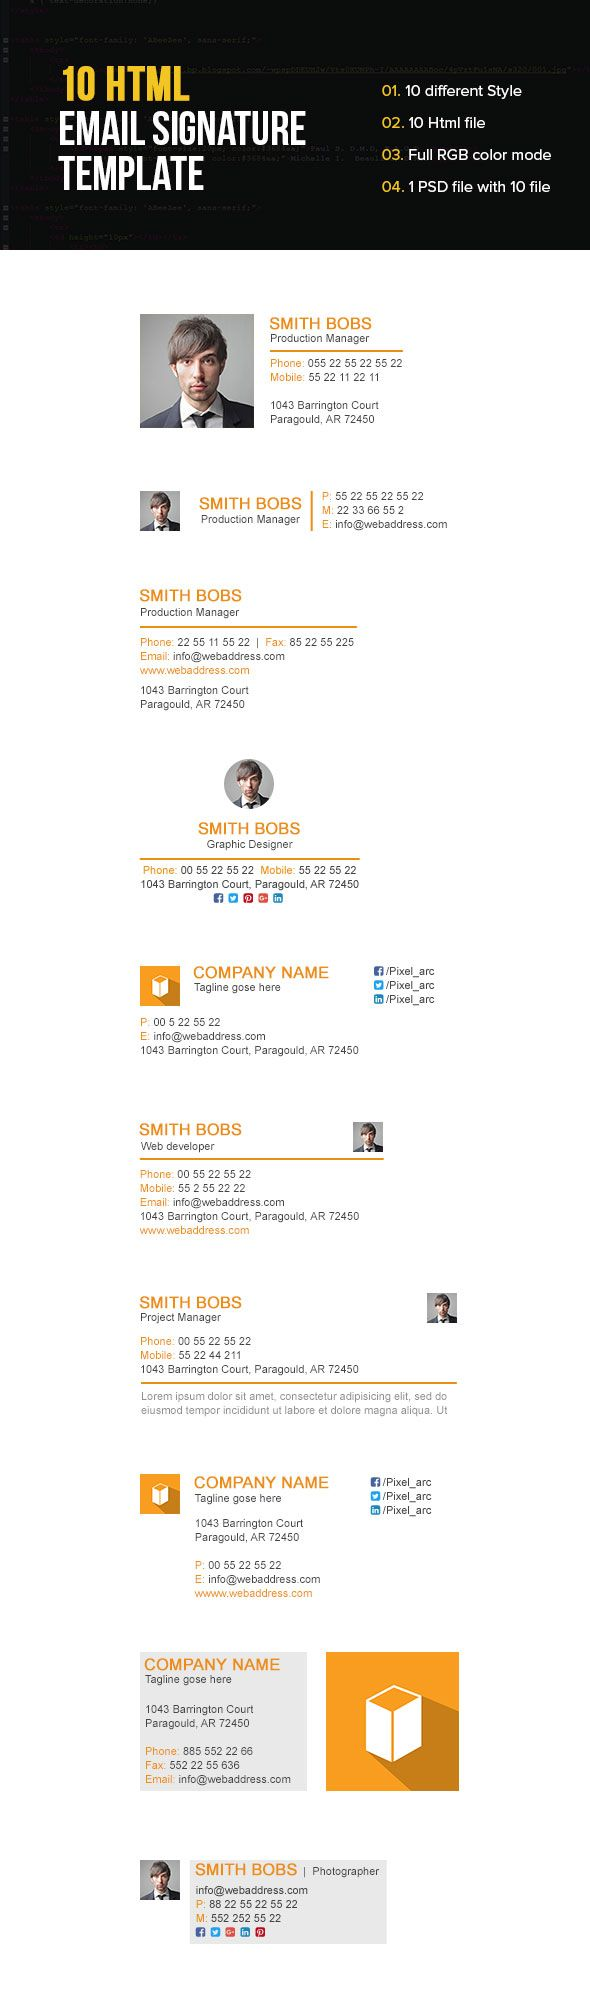 Html Email signature emailsignature emailsignaturedesign Email